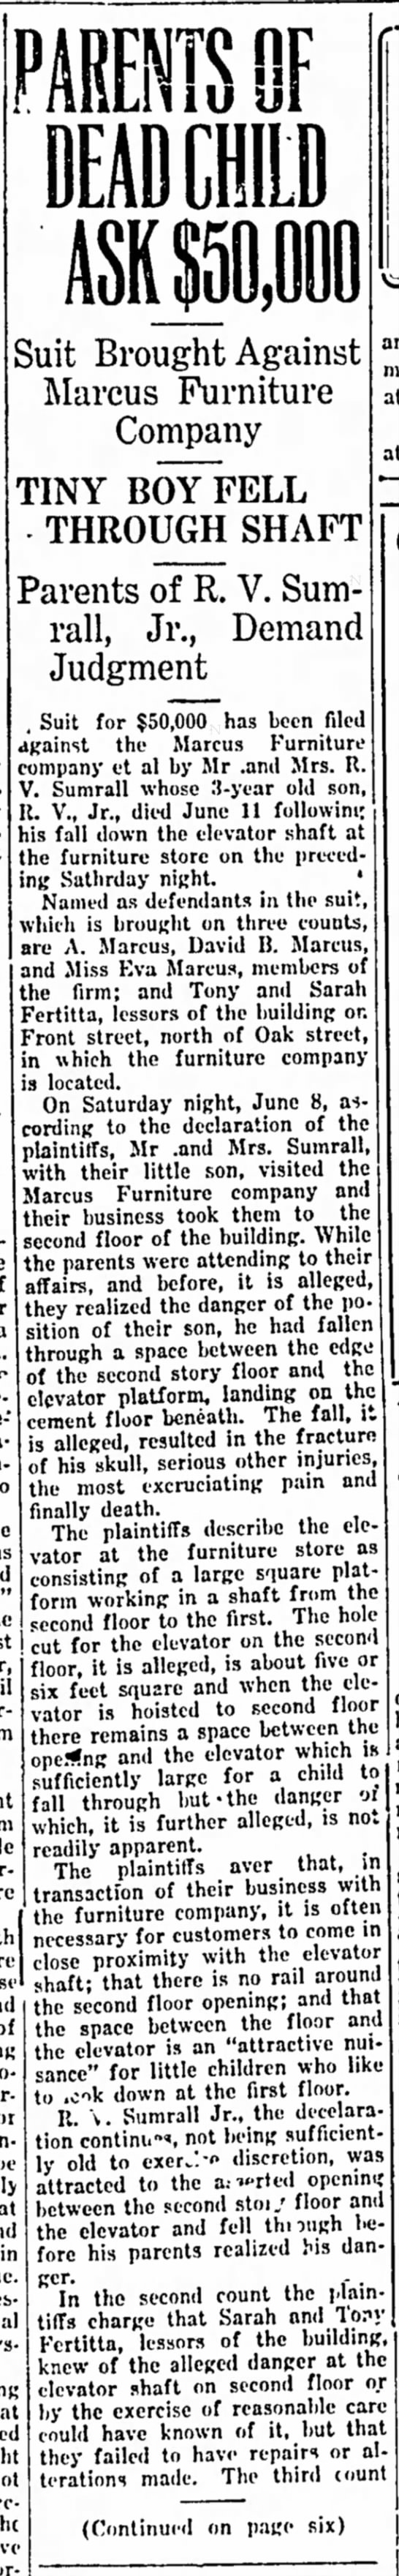 Marcus Furniture Fatality 16 June 1929